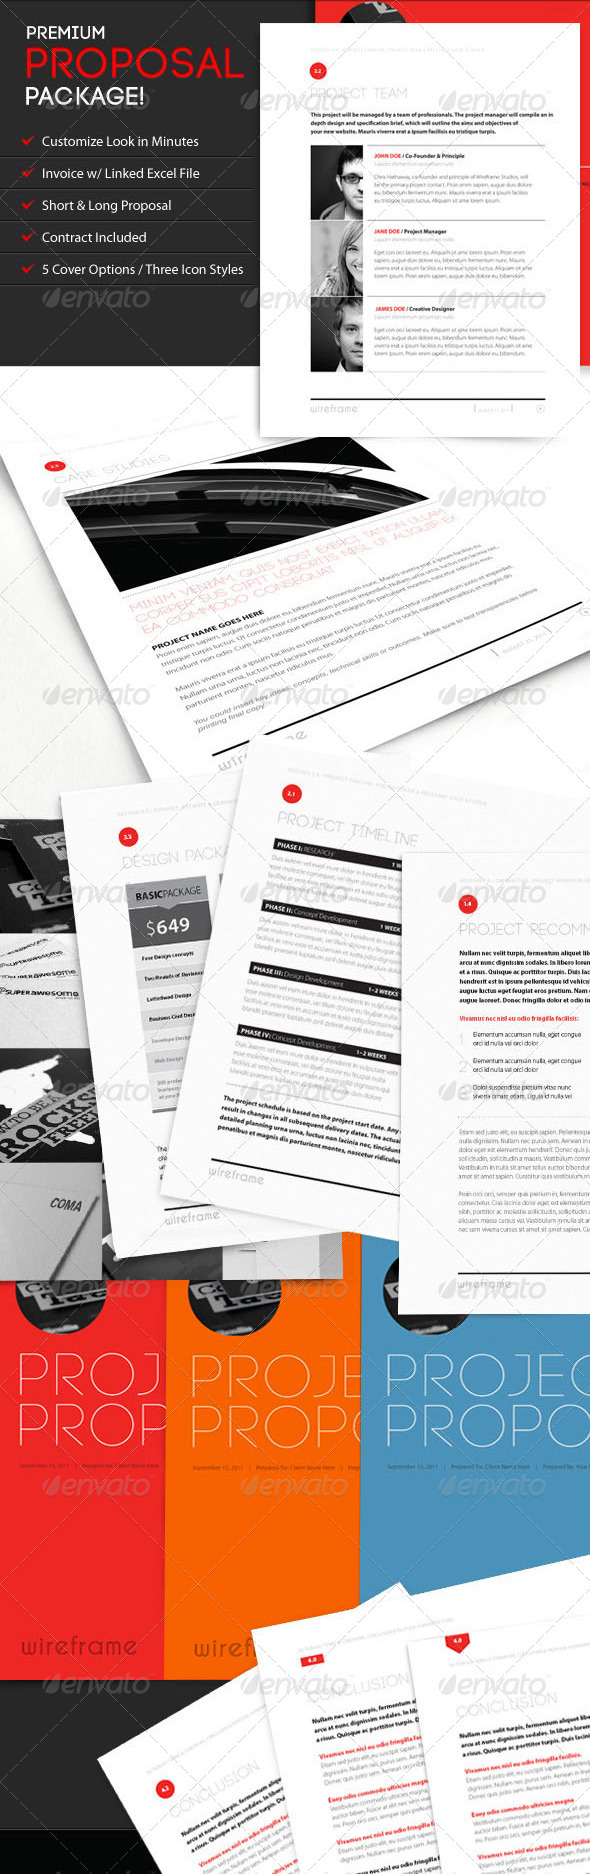 Wireframe: Proposal Template w/ Invoice & Contract - Proposals & Invoices Stationery